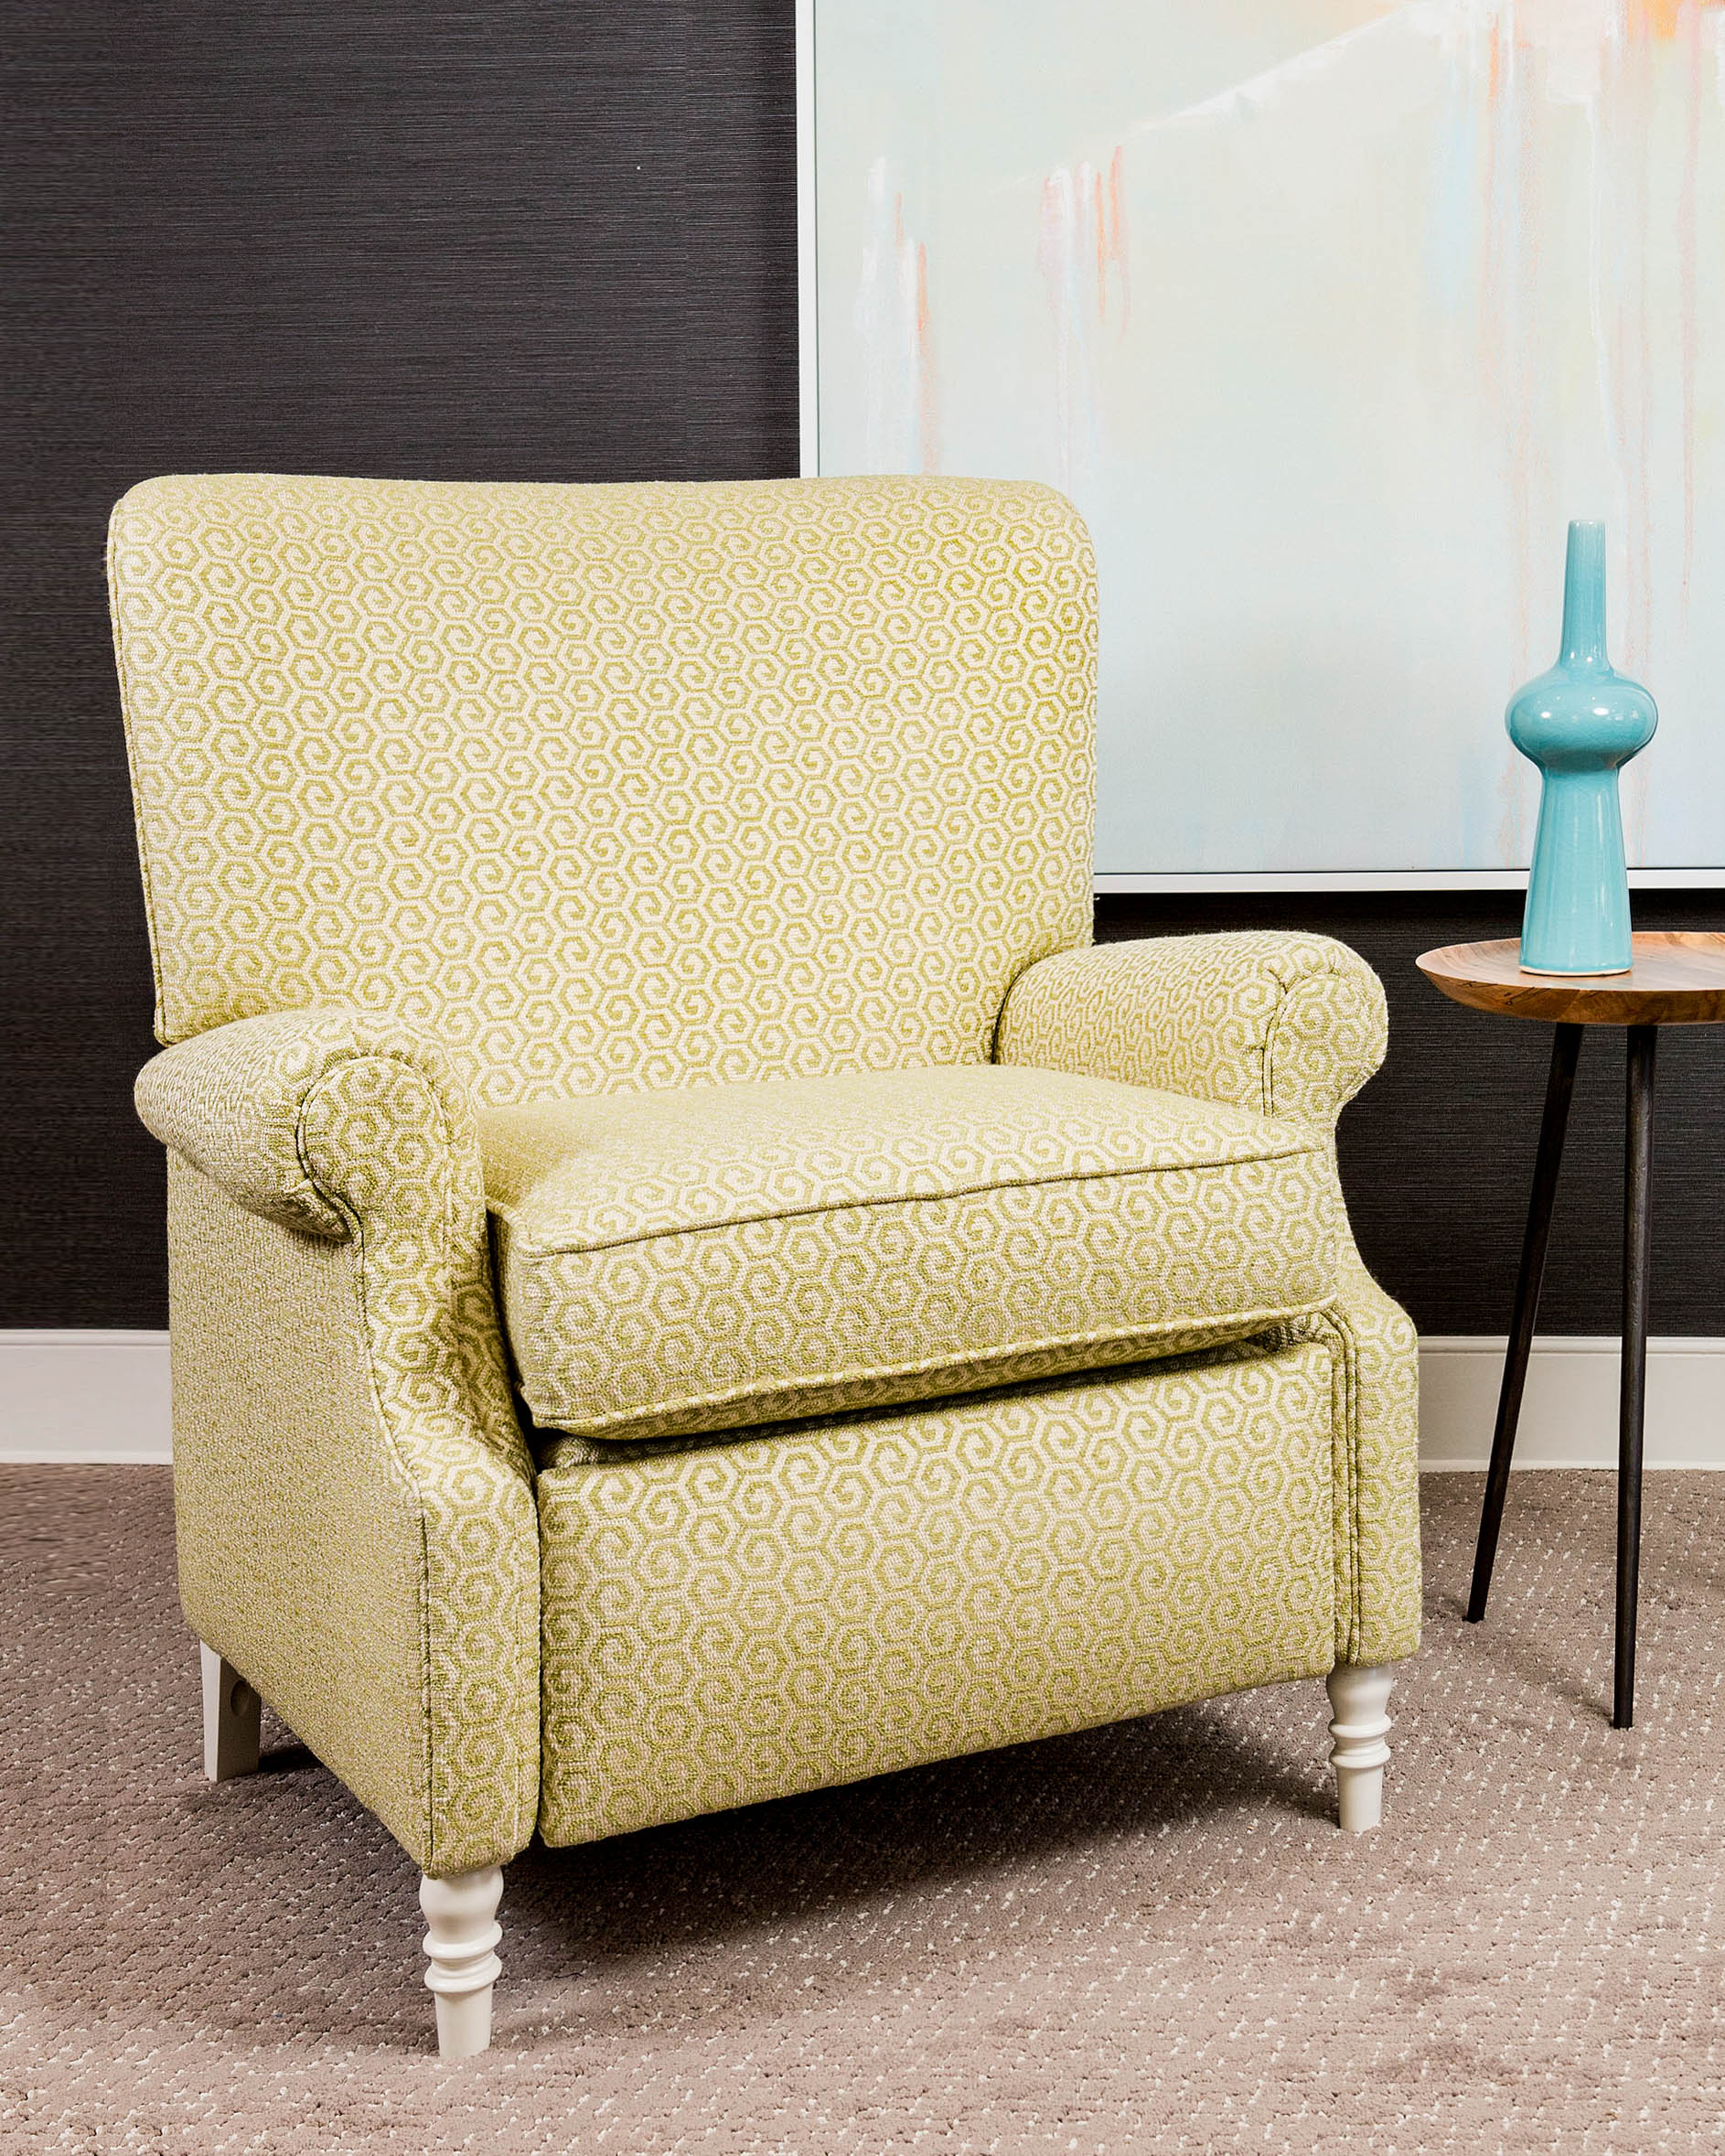 """""""Design must be comfortable to be successful. The Harper chair joins our Nestology collection for 2019 because beneath its classic clubby good looks a recliner waits to offer comfort with the touch of a button."""" - Paul Miller, Lookbook 2019"""